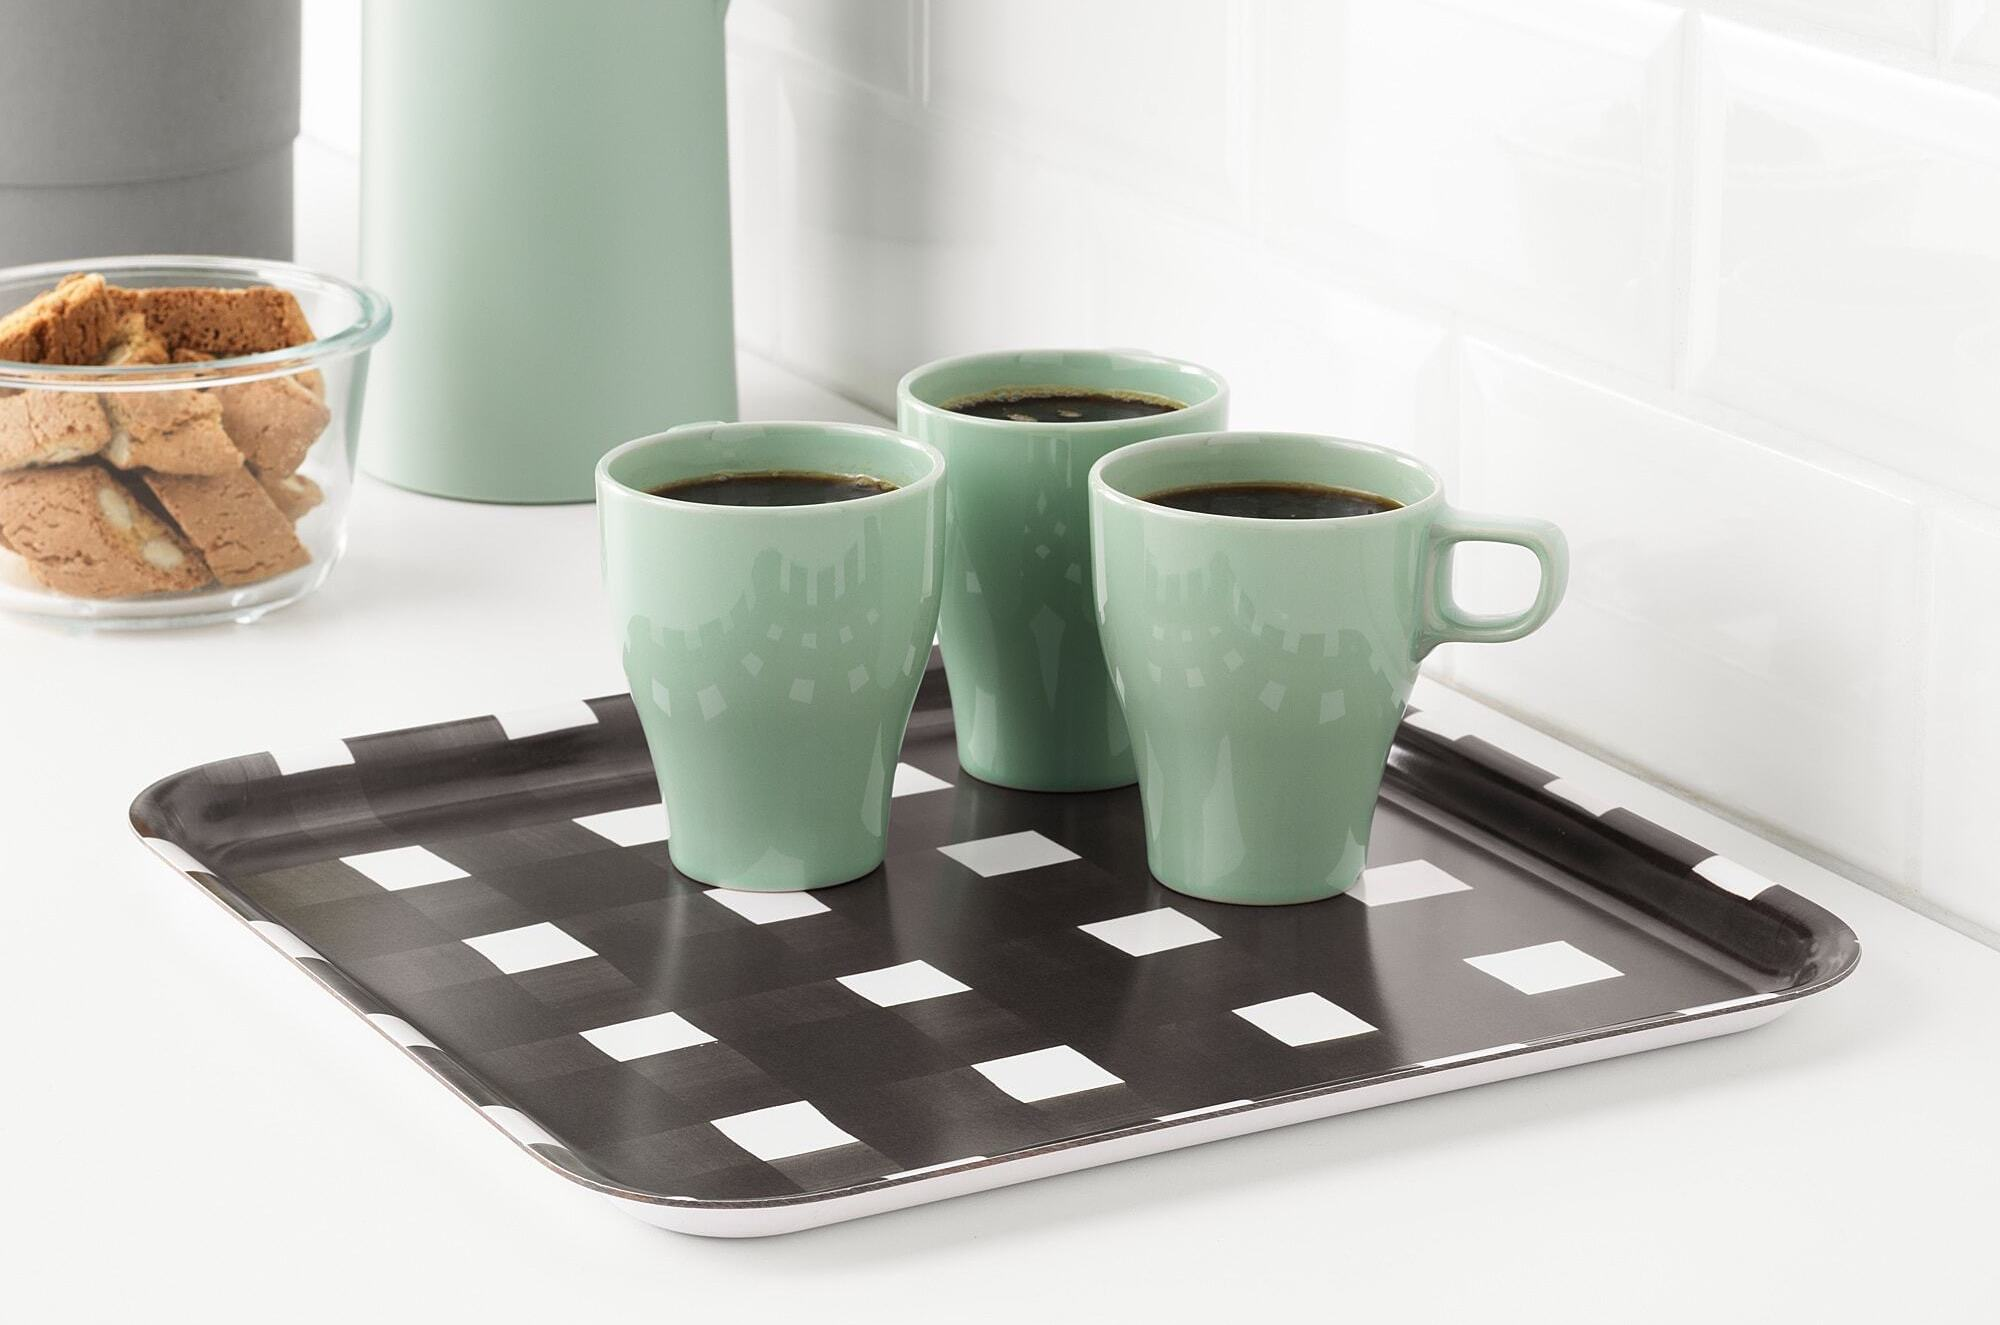 A black and white tray with three cups of coffee